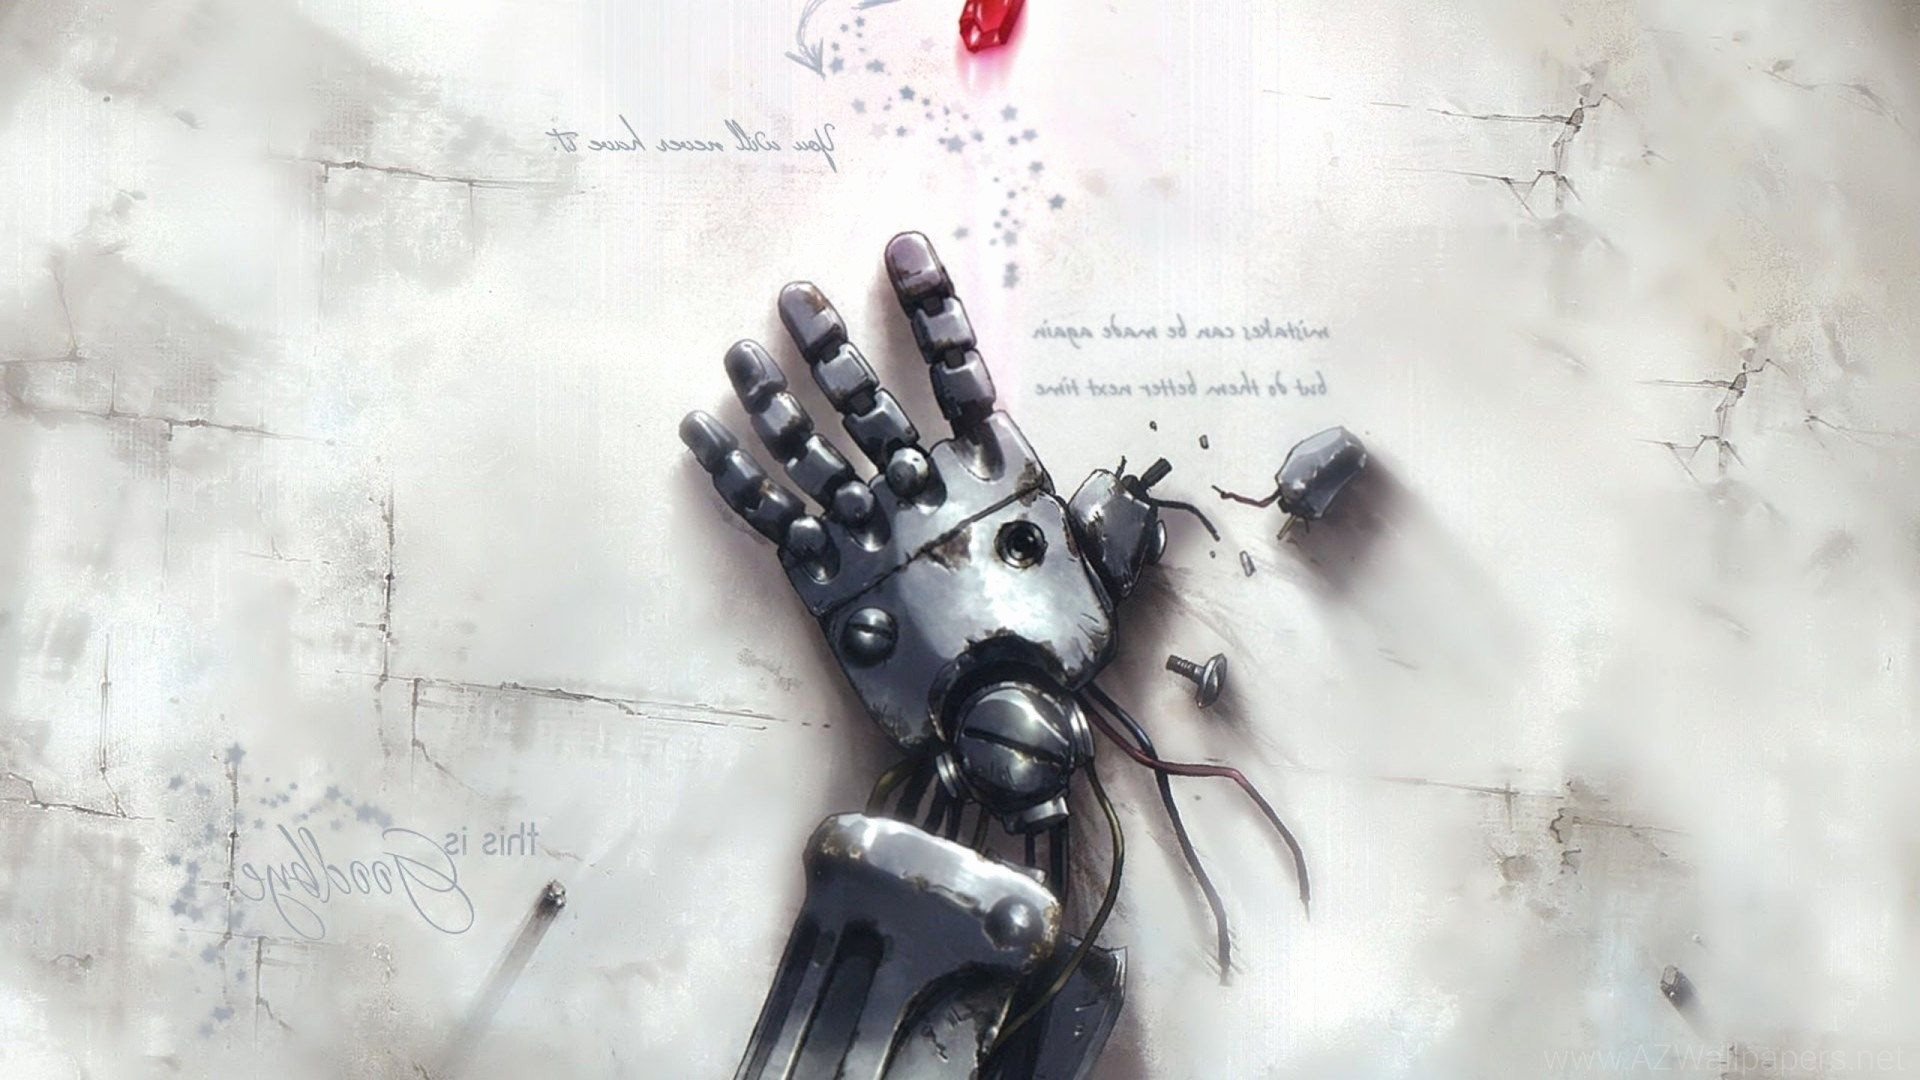 Res: 1920x1080, Search Wallpapers Best Of Fullmetal Alchemist Hd Wallpapers Backgrounds  Wallpaper